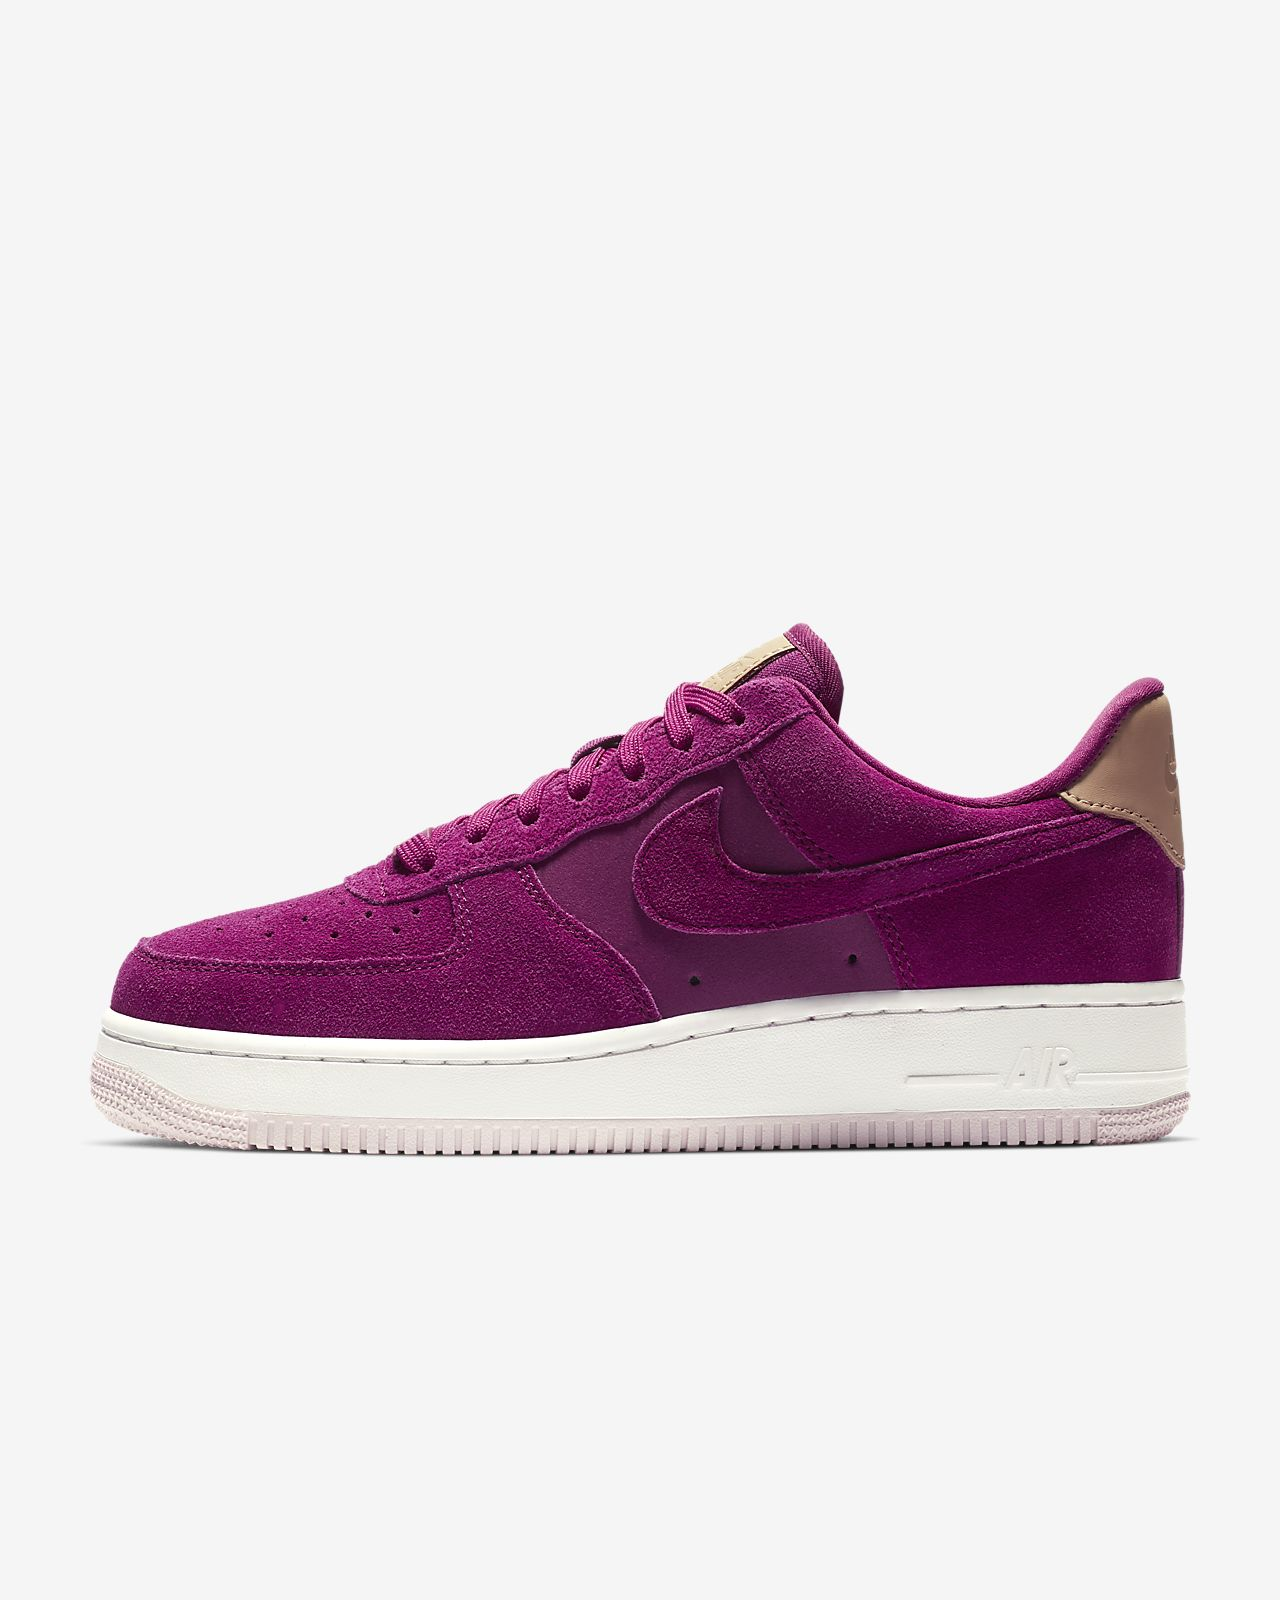 Premium Nike Low Air Ch '07 Femme Force Chaussure Pour 1 4Yw1xaa7